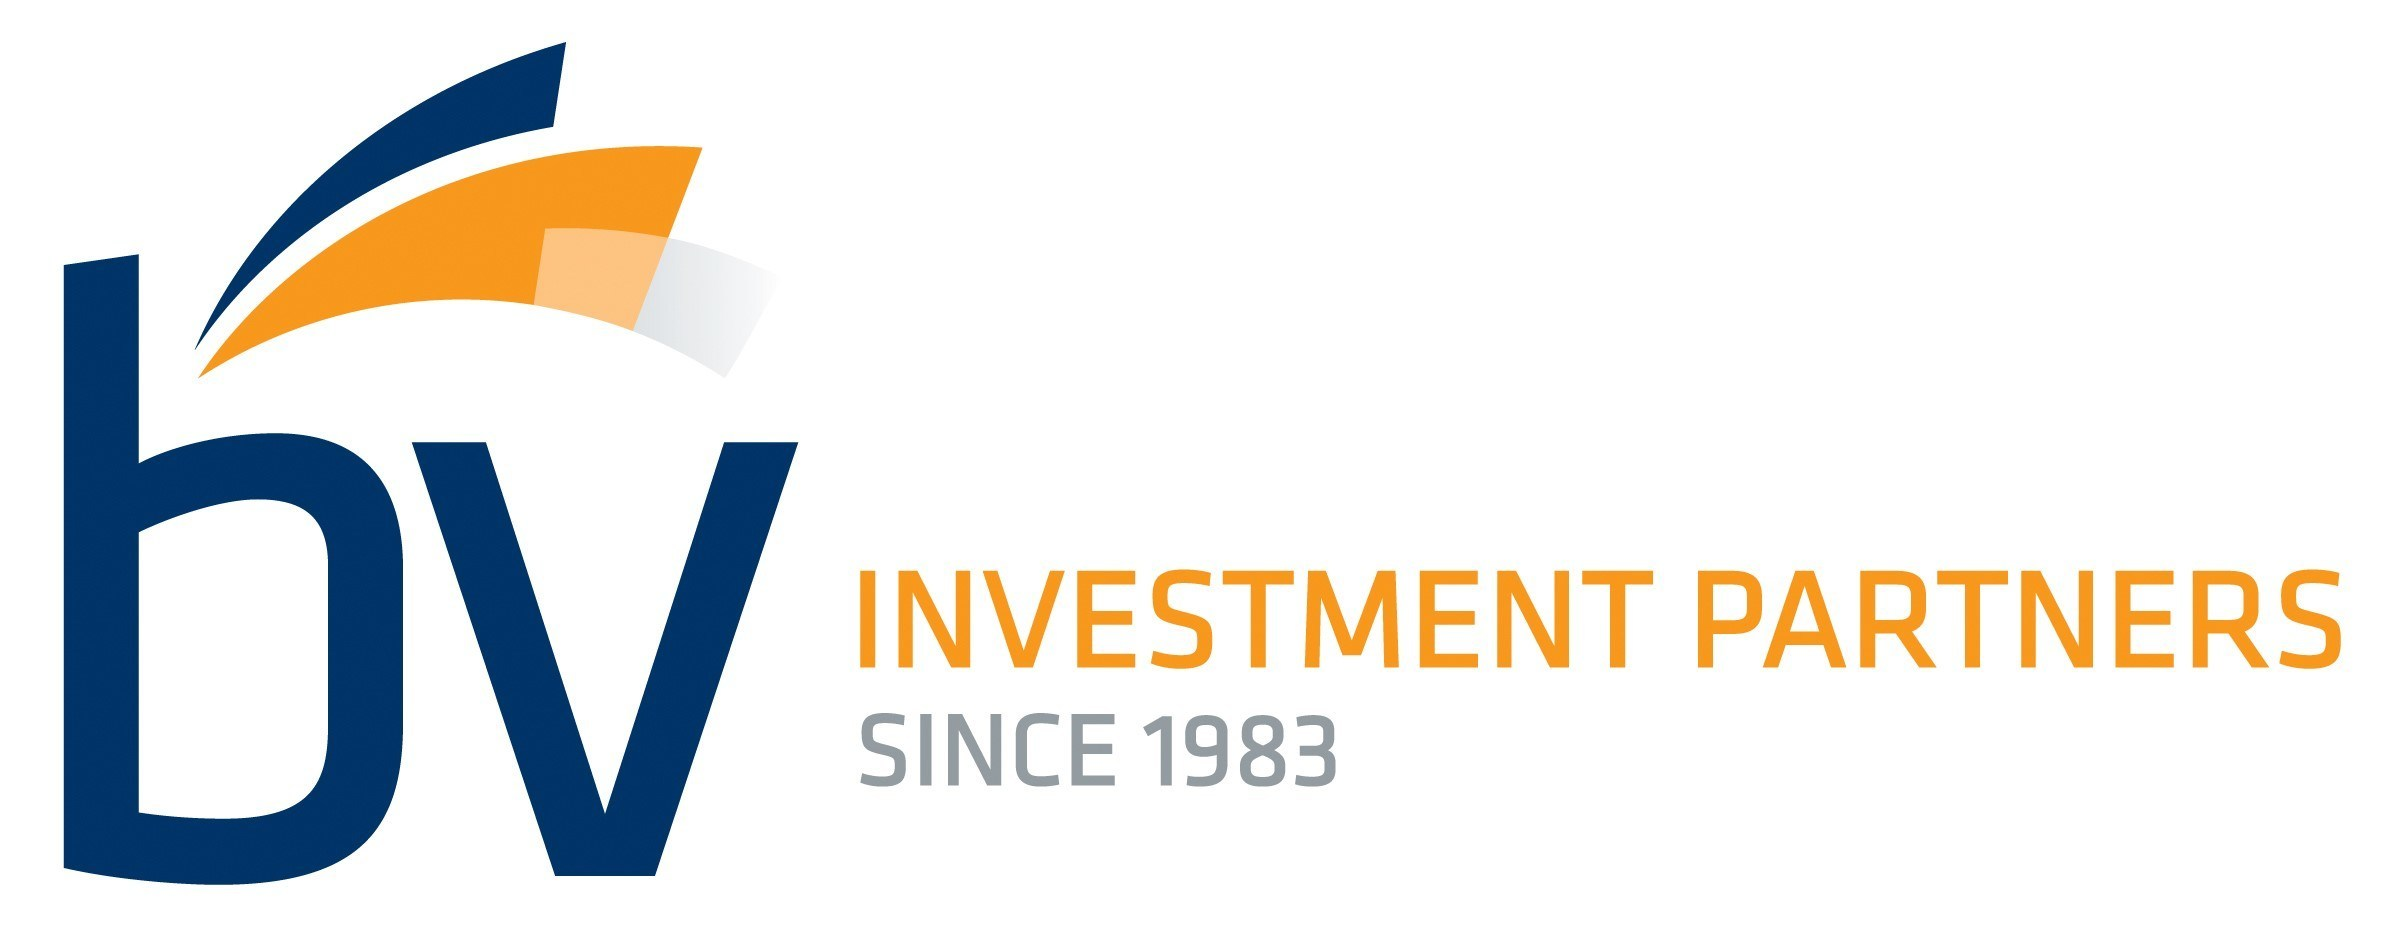 Bv investment partners careers city of london investment trust dividend payments are categorized